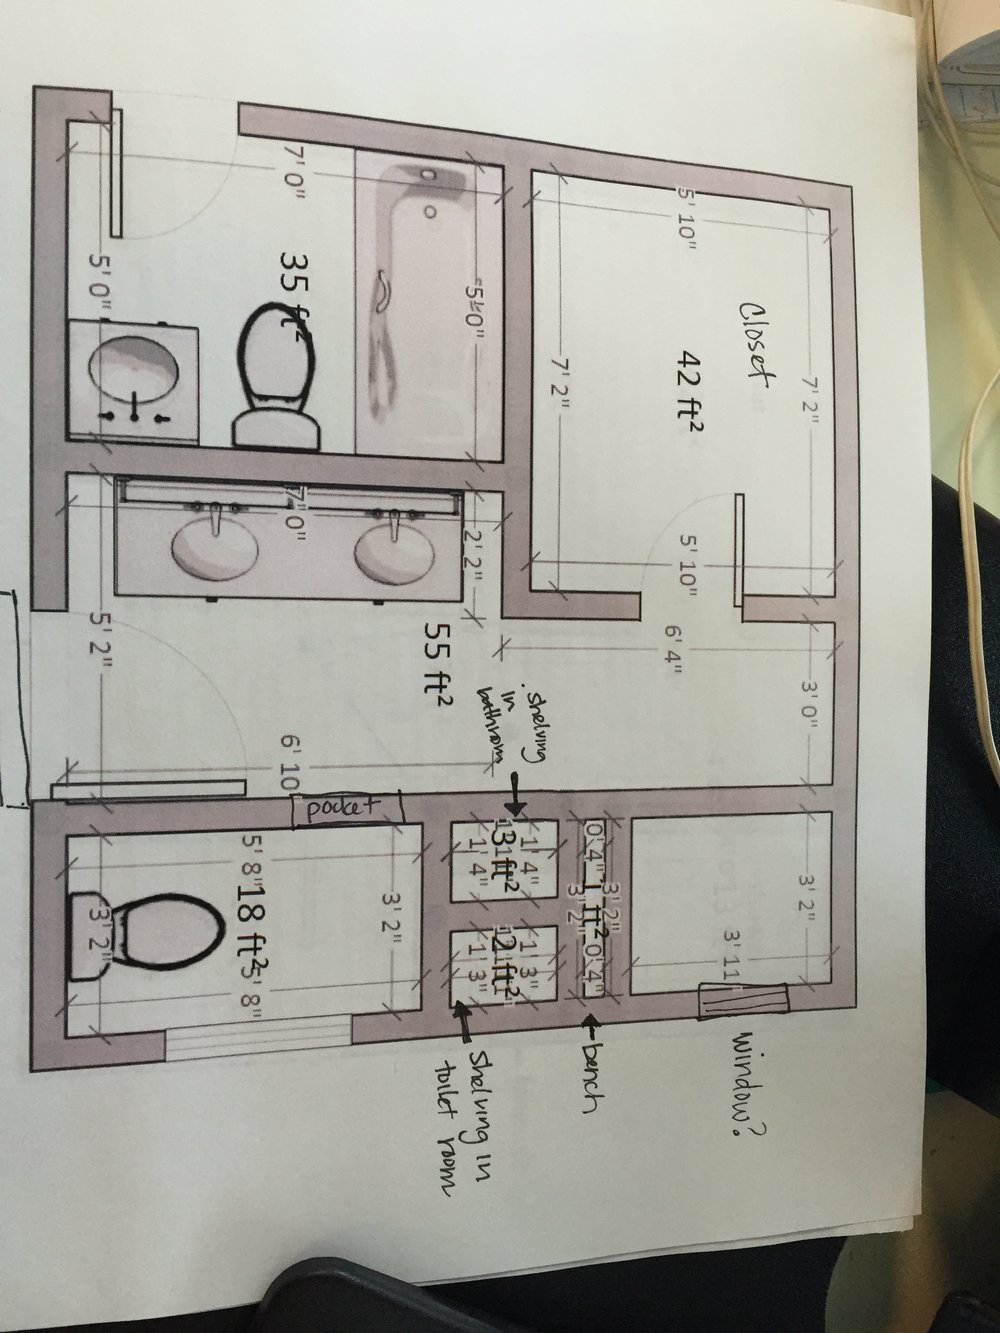 New master bathroom and guest bathroom layout